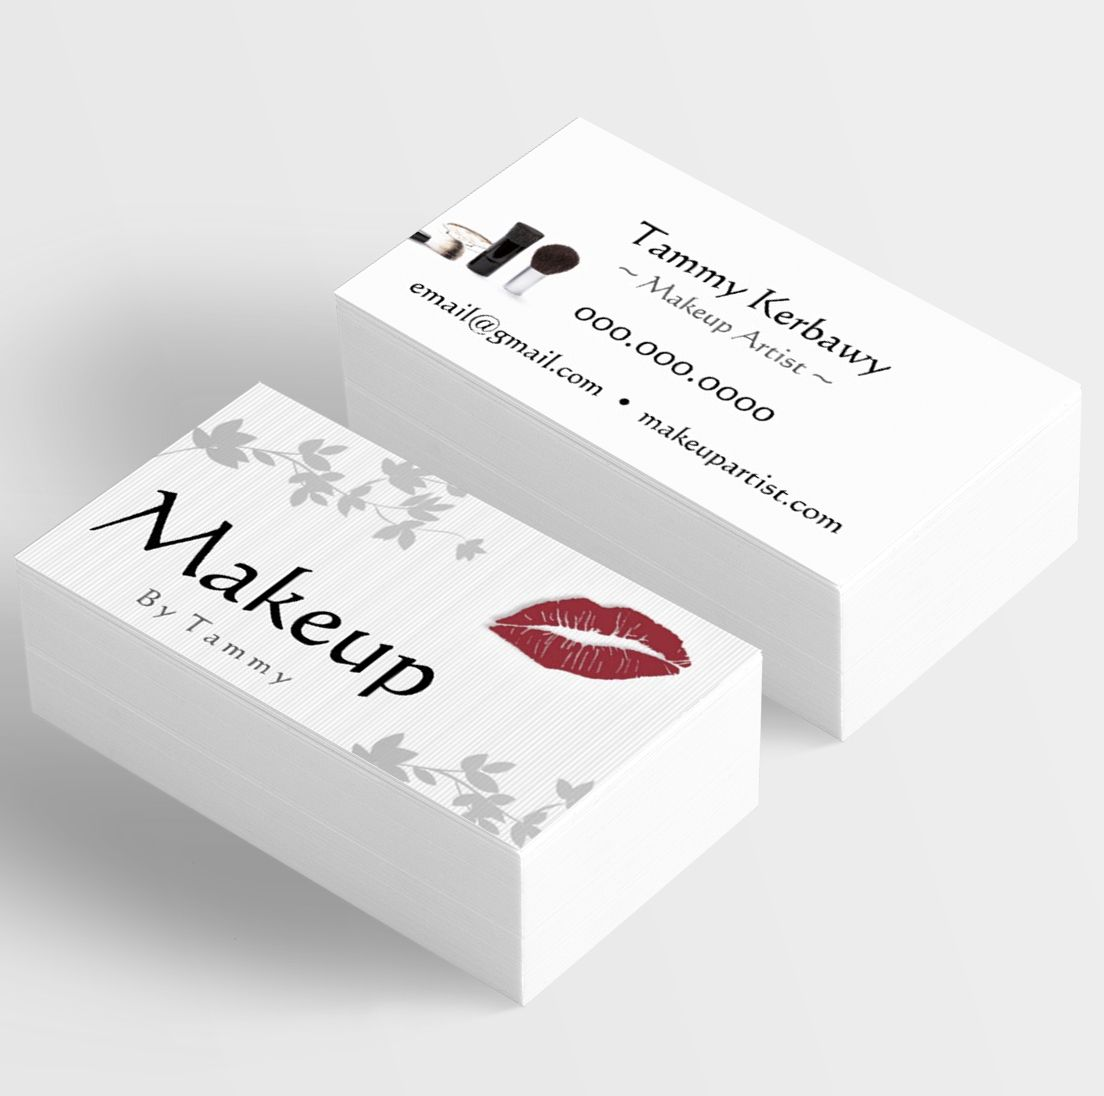 Makeup artist business card template kindly visit itwvisions makeup artist business card template kindly visit itwvisions or email tammyitwvisions mua makeupartist younique youniquepresenter makeup cheaphphosting Images